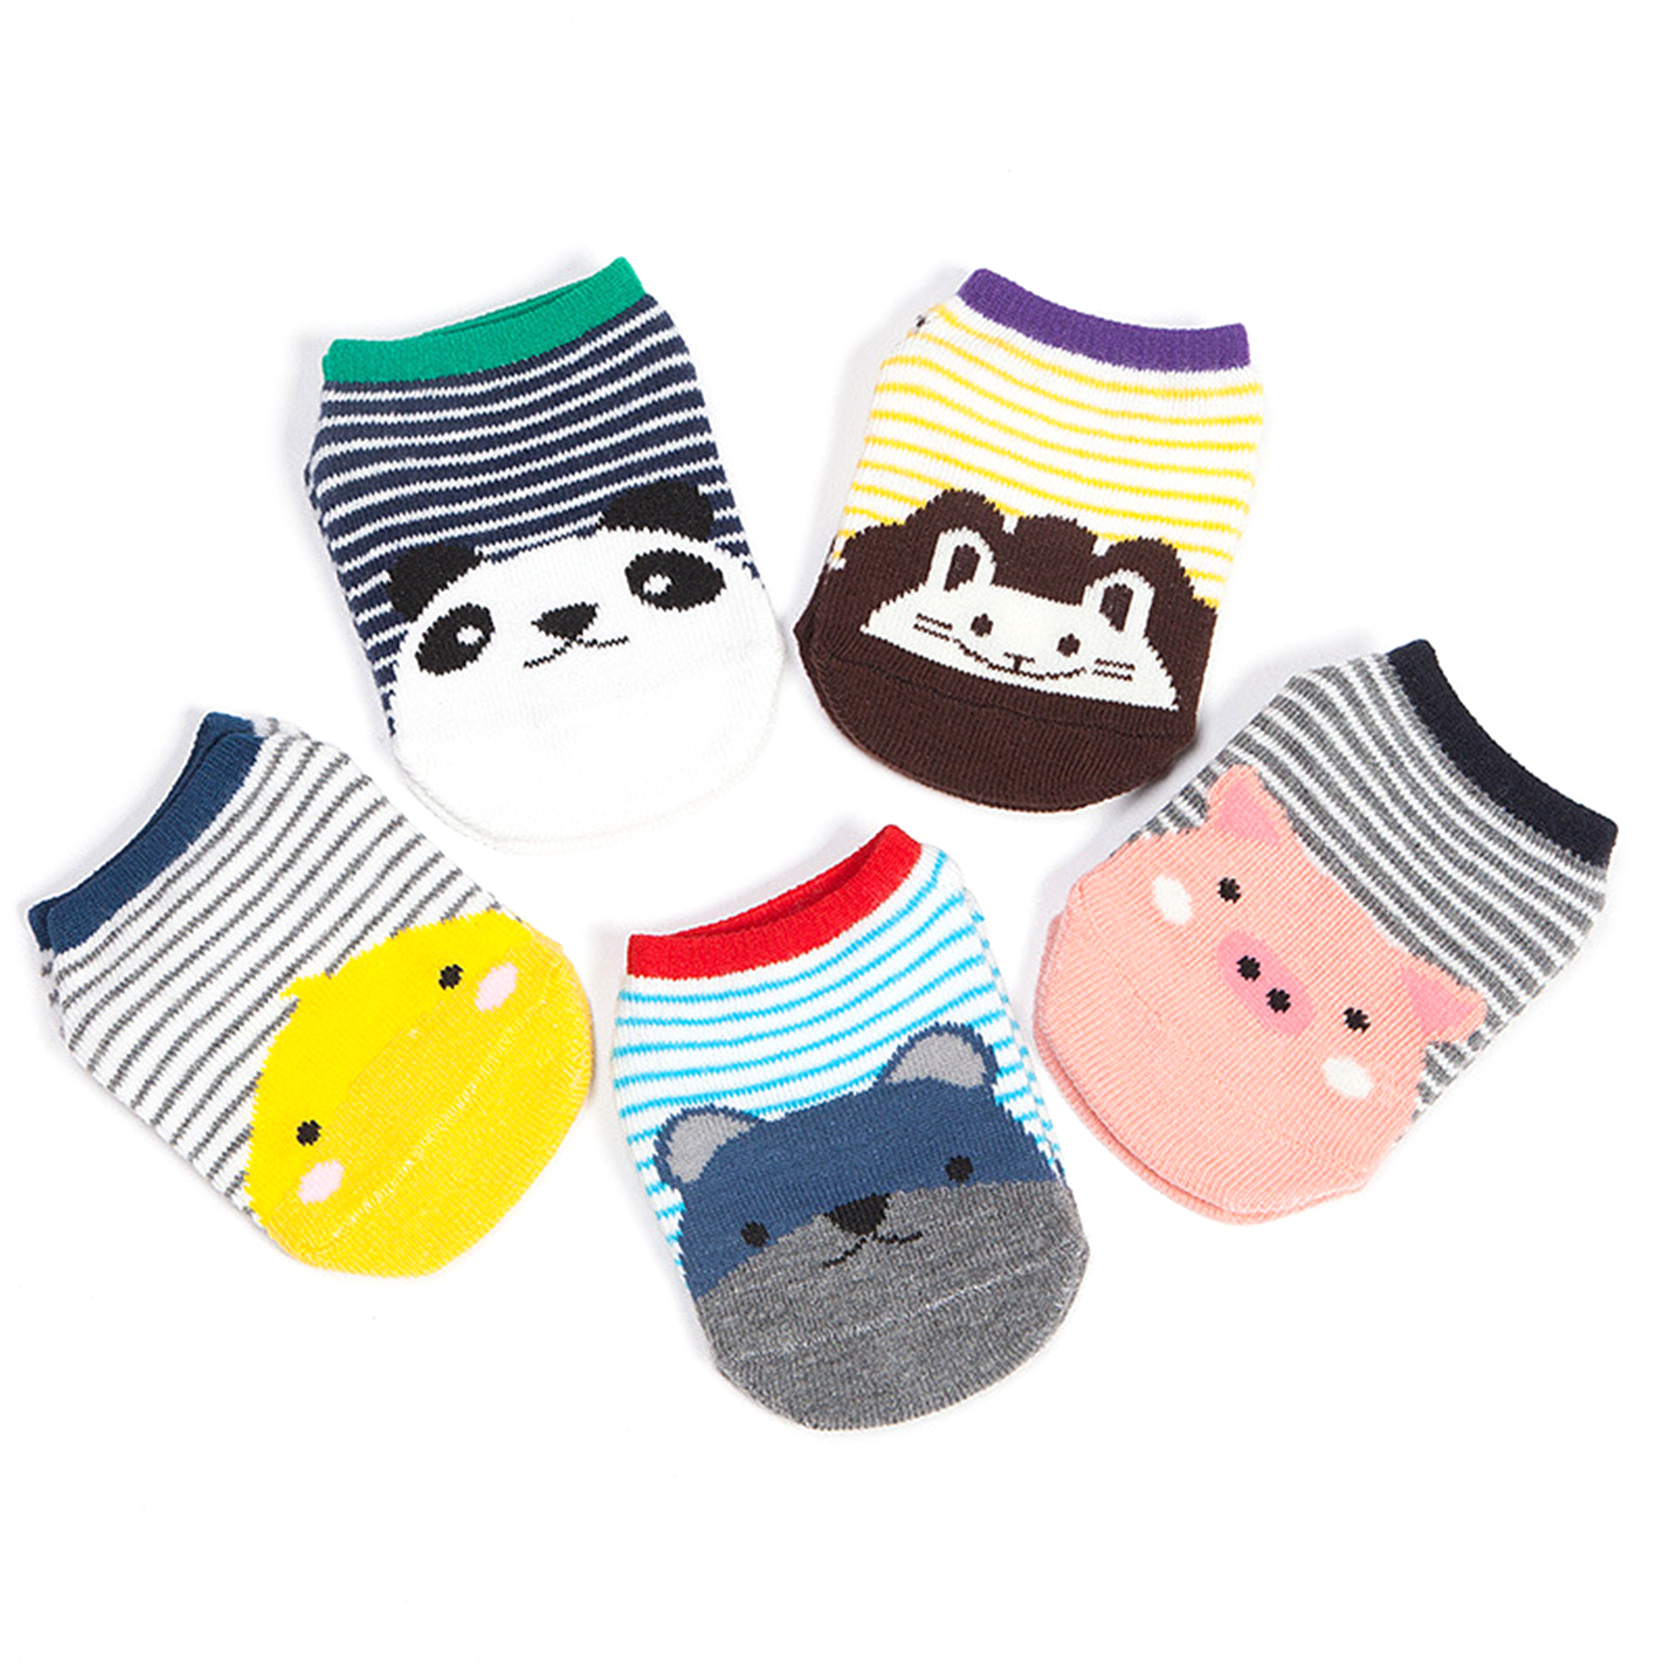 Newborn Infant Boy Girl Baby Socks Anti Slip Cotton Striped Print Animal Pig Lion Bear Panda Cute Short Socks худи print bar panda santa